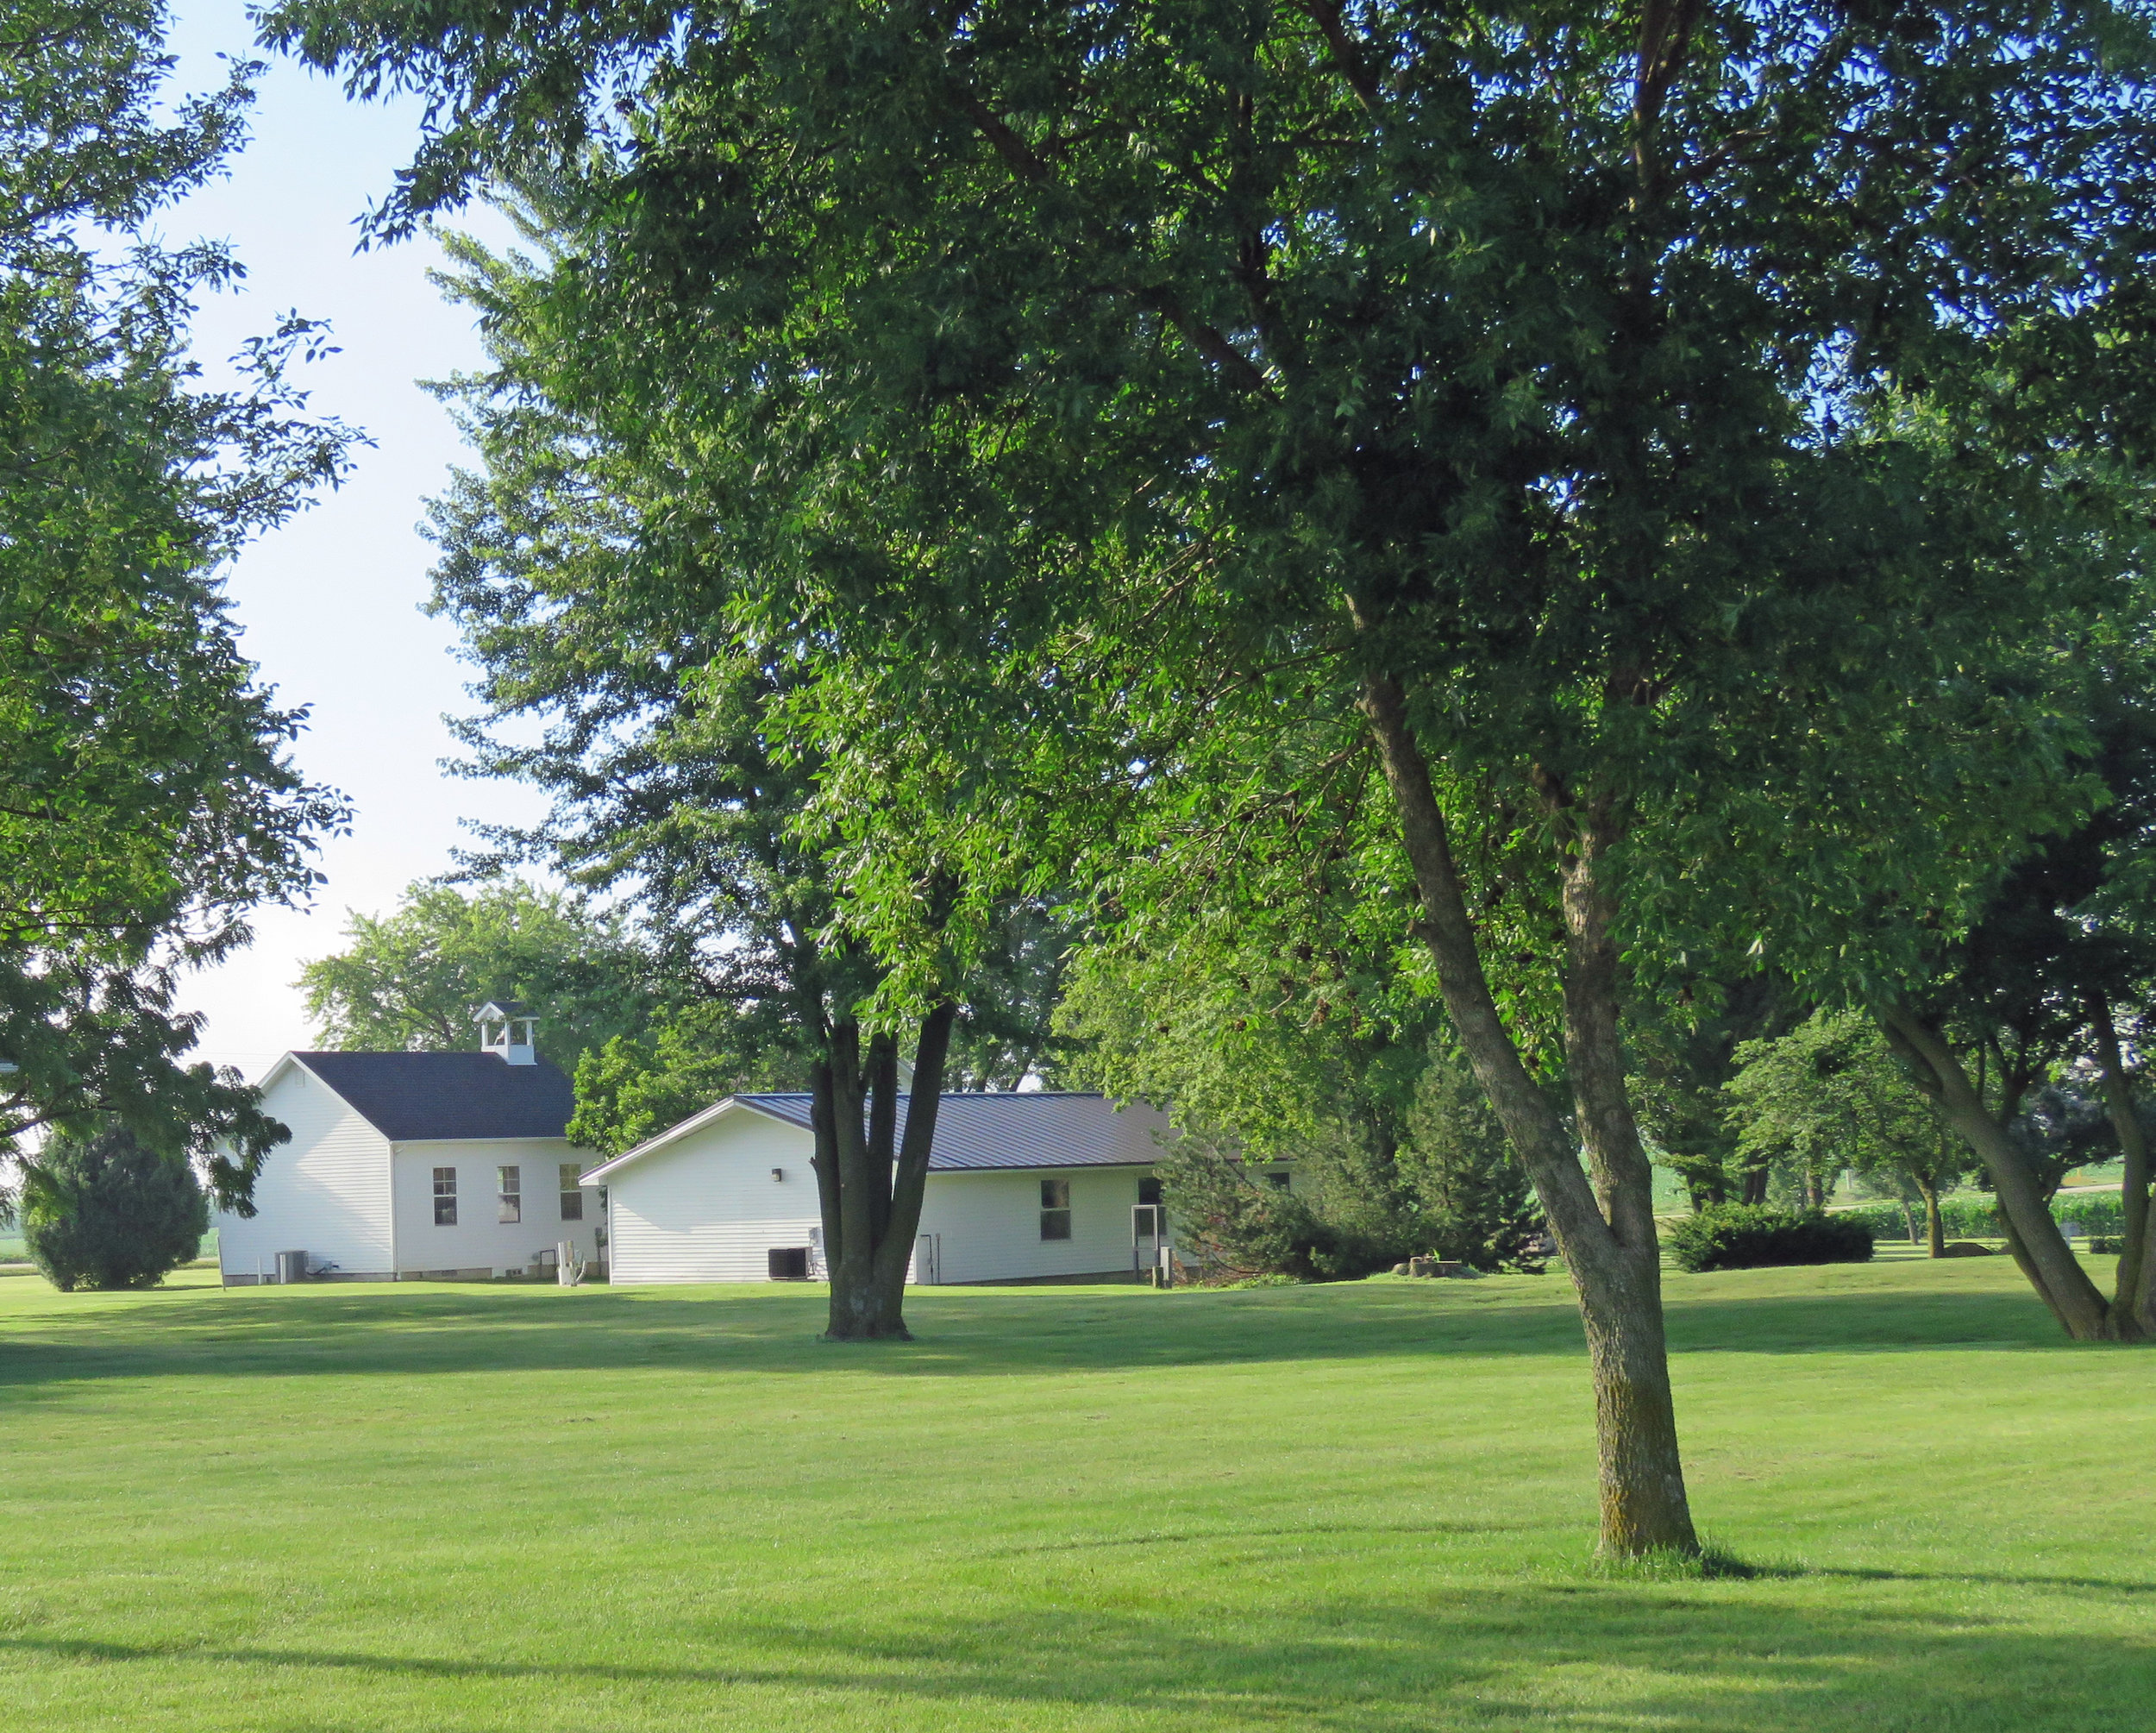 View from behind the old schoolhouse.